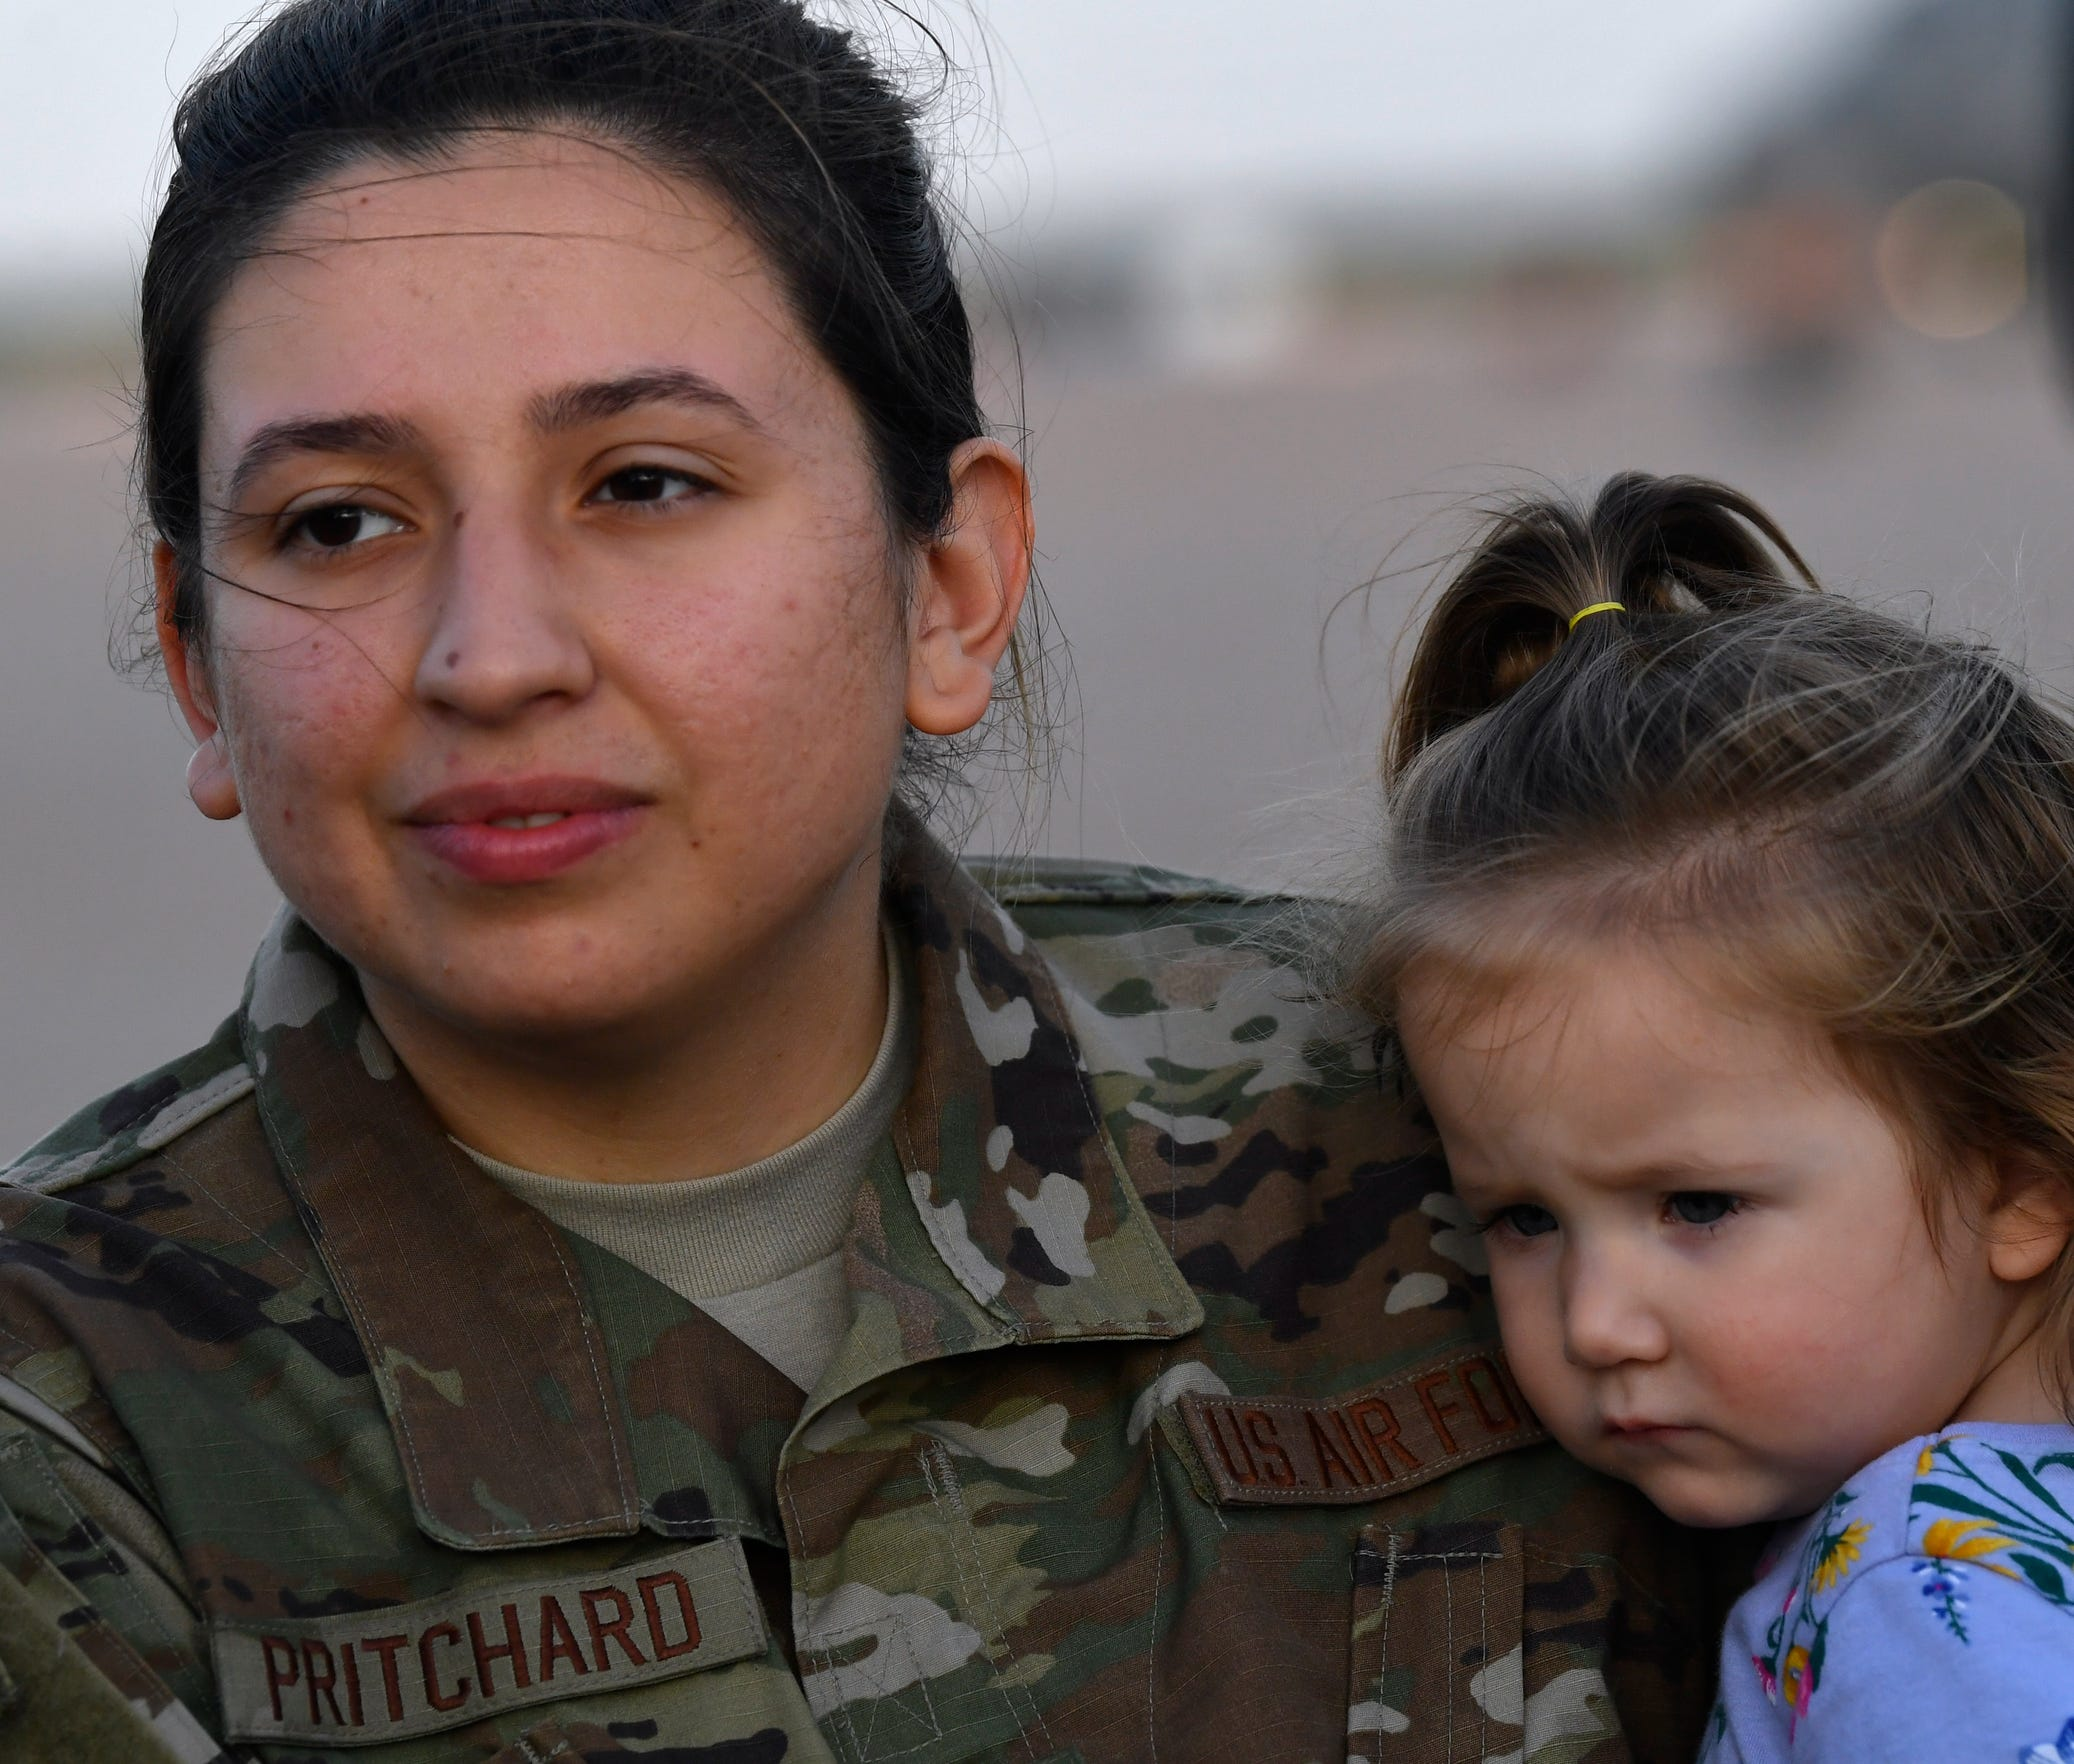 Senior Airman Jessica Pritchard holds her daughter Izabella during an interview before deploying from Dyess Air Force Base with the 39th Airlift Squadron Sept. 9, 2019. Pritchard will be in Afghanistan and away from her family for the rest of the year.